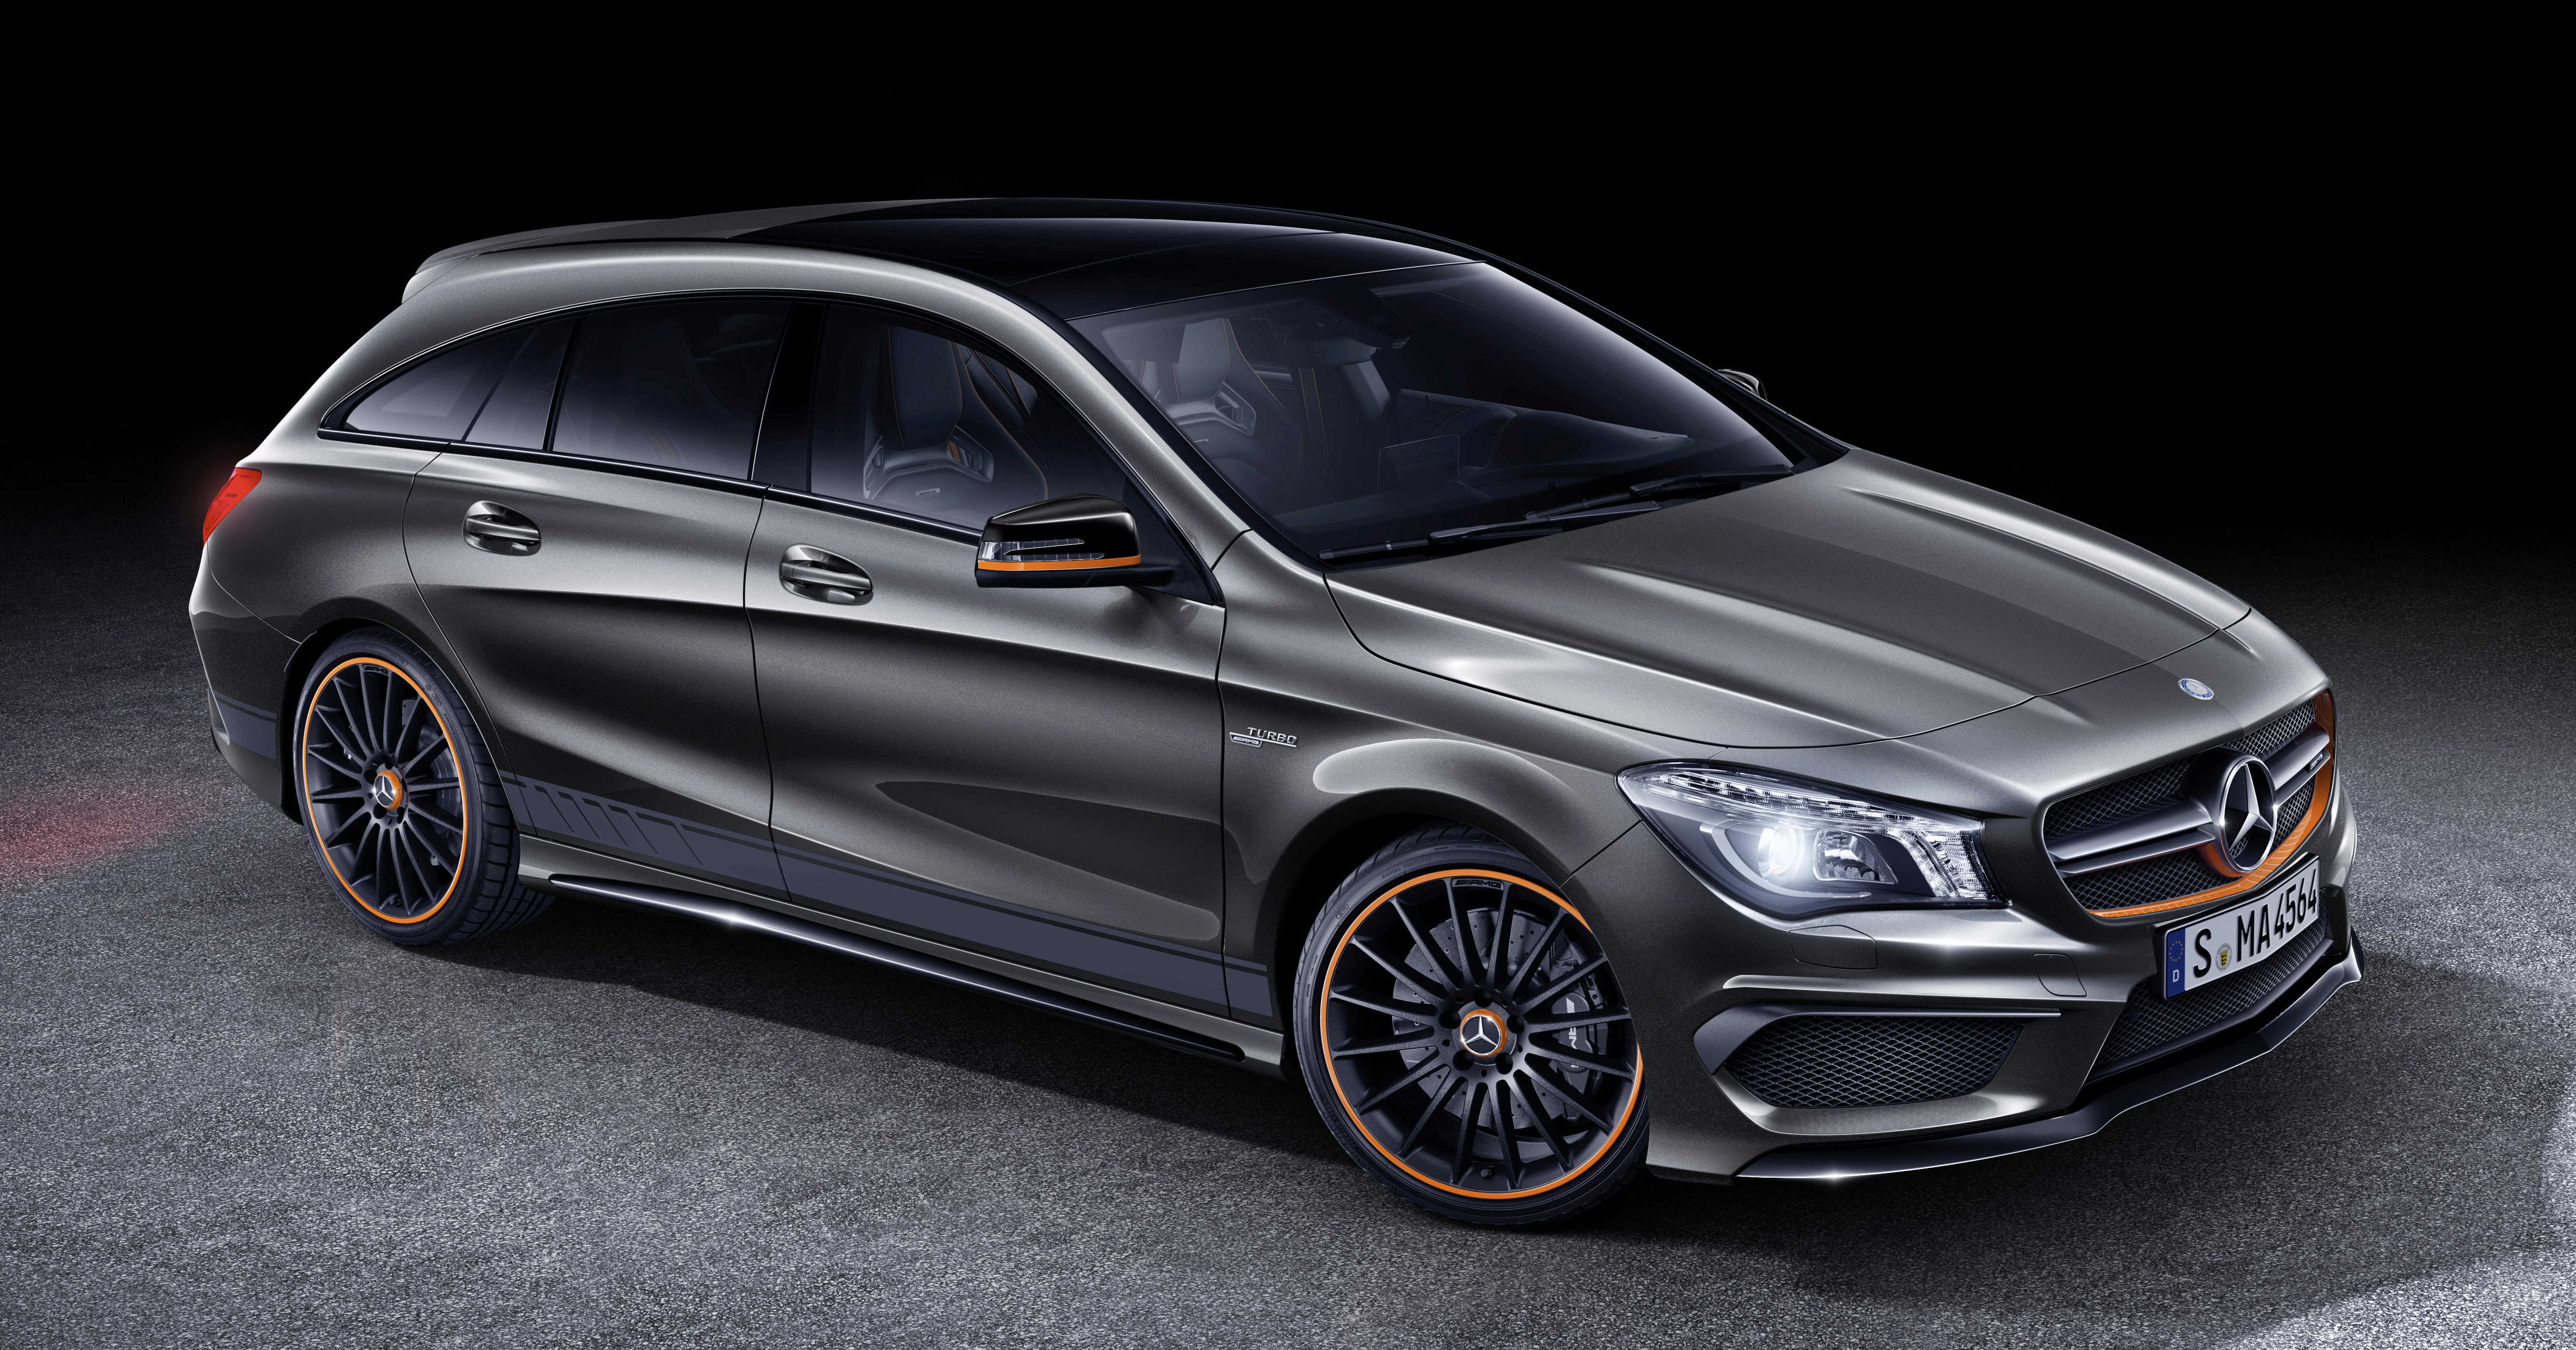 gallery mercedes cla 45 amg shooting brake image 316848. Black Bedroom Furniture Sets. Home Design Ideas